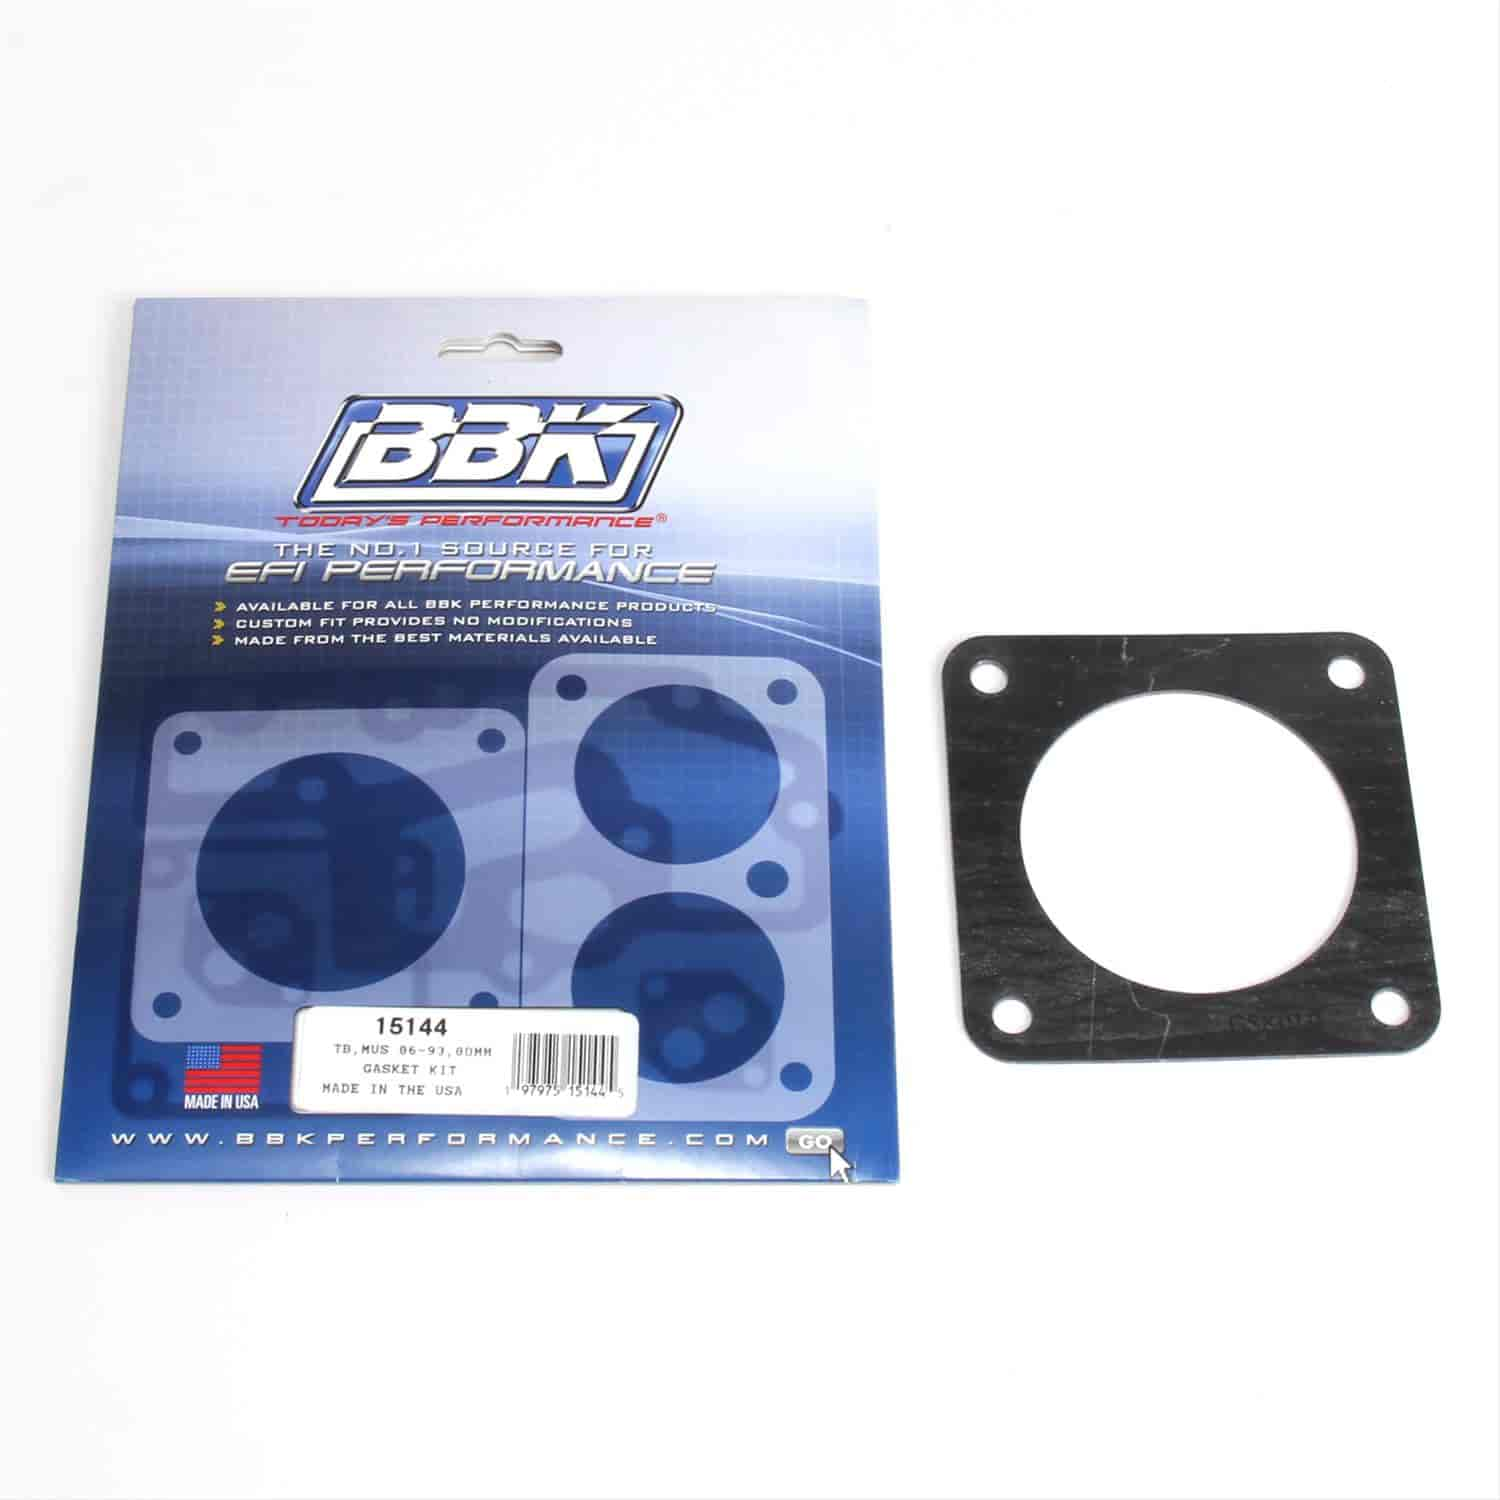 BBK Performance Products 15144 - BBK Throttle Body Gasket Kits